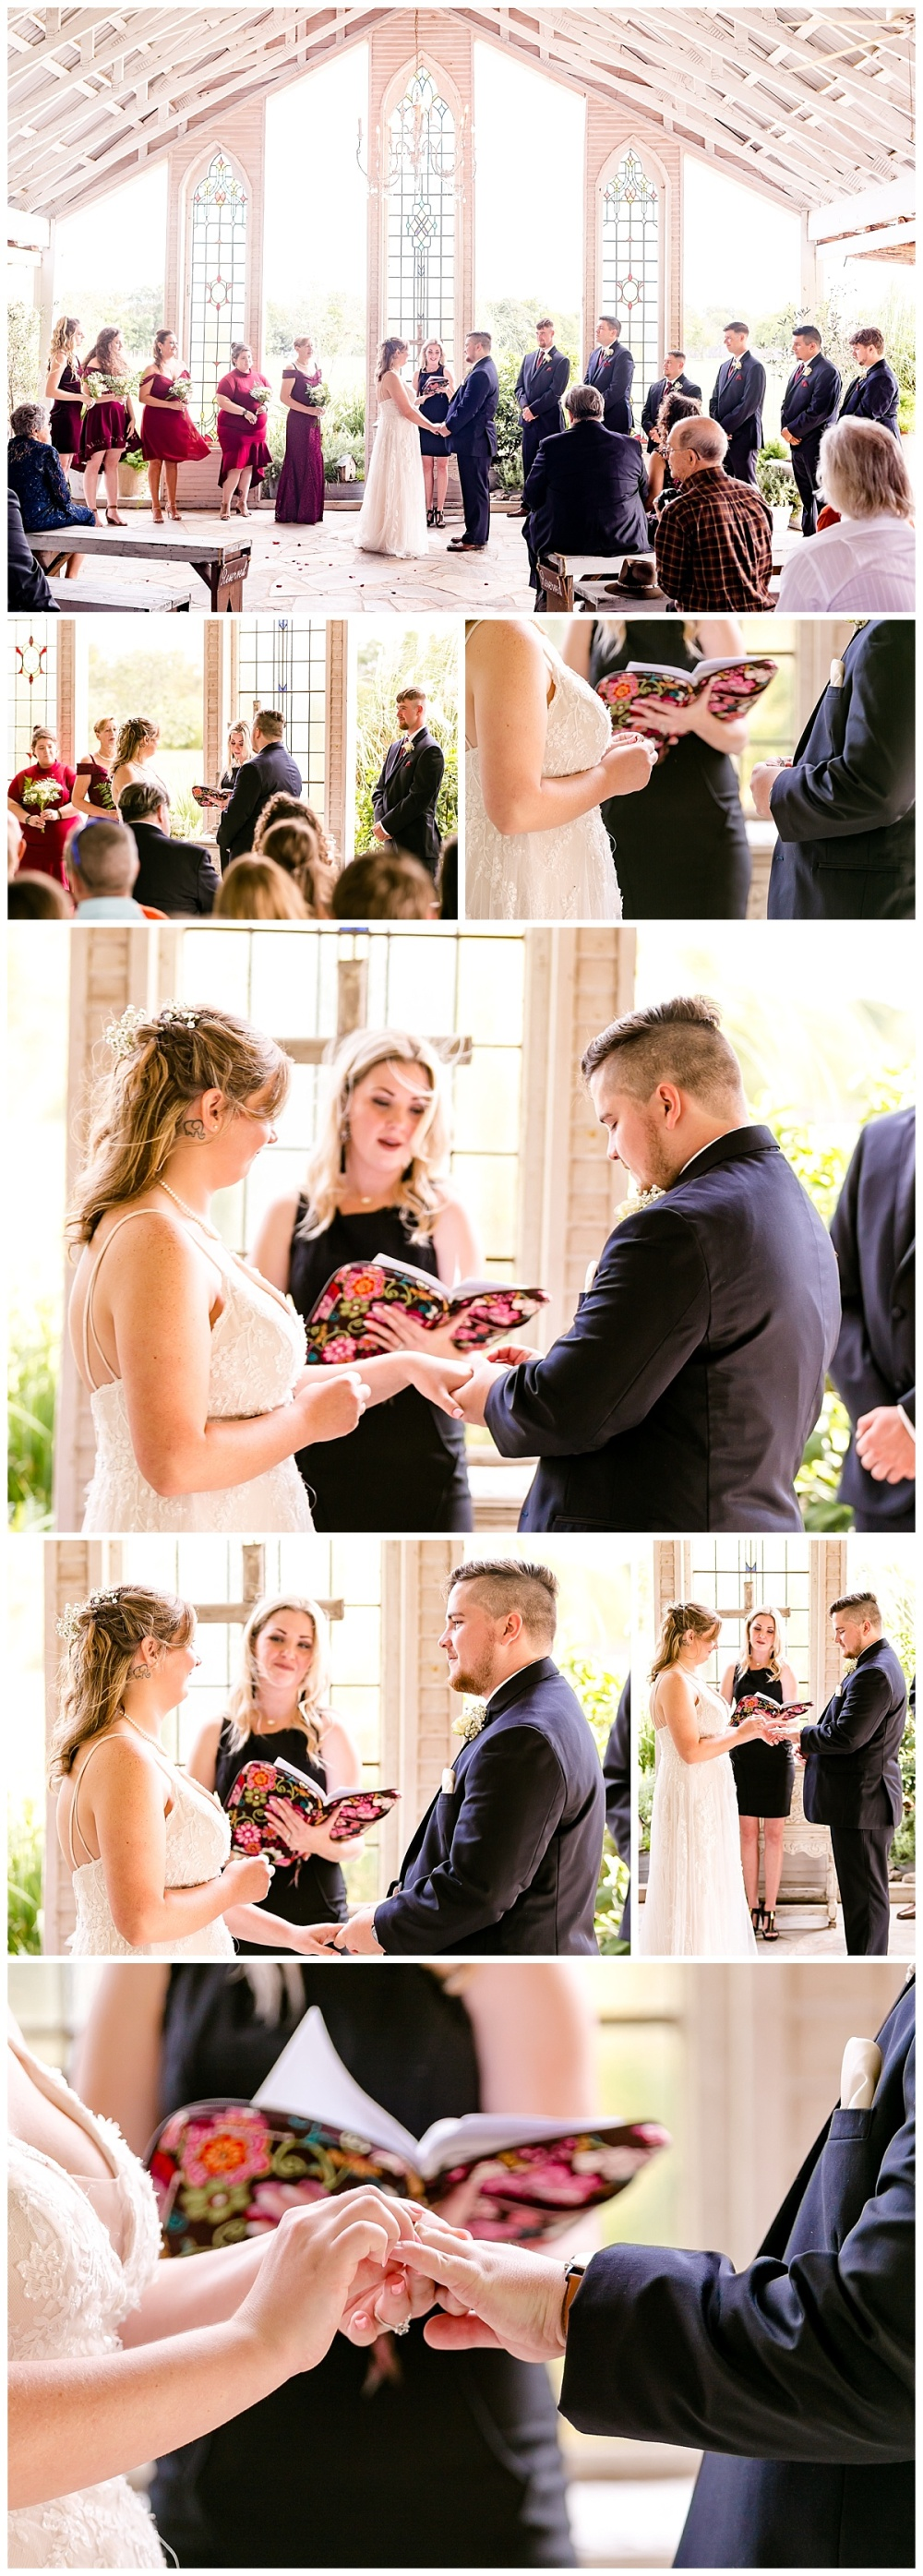 Texas-Wedding-Photographer-Gruene-Estate-Open-Air-Chapel-Carly-Barton-Photography-Katie-Nic_0033.jpg